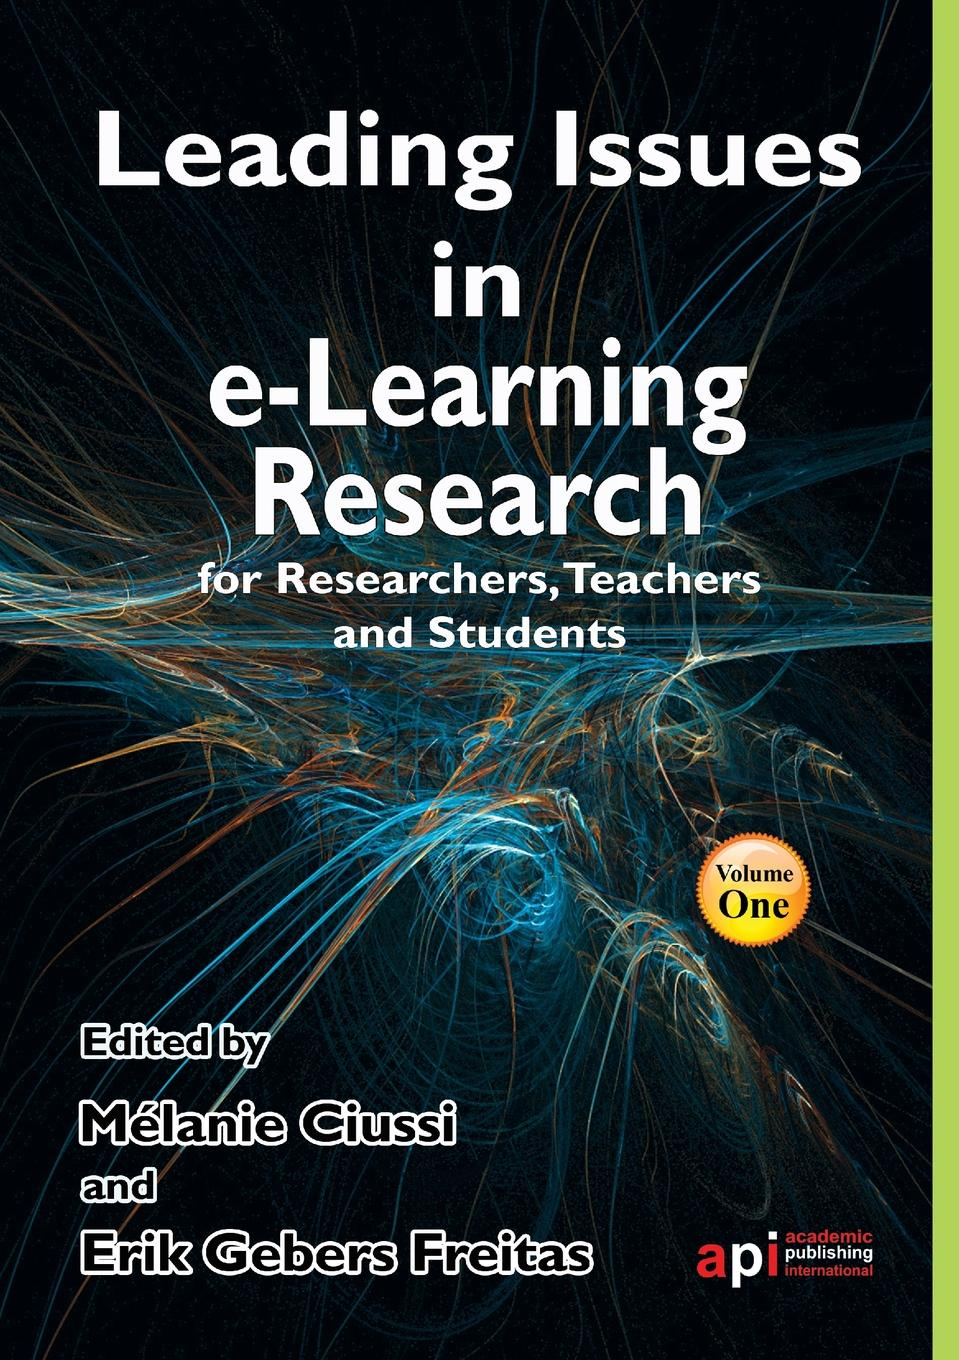 Leading Issues in E-Learning Research for Researchers, Teachers and Students